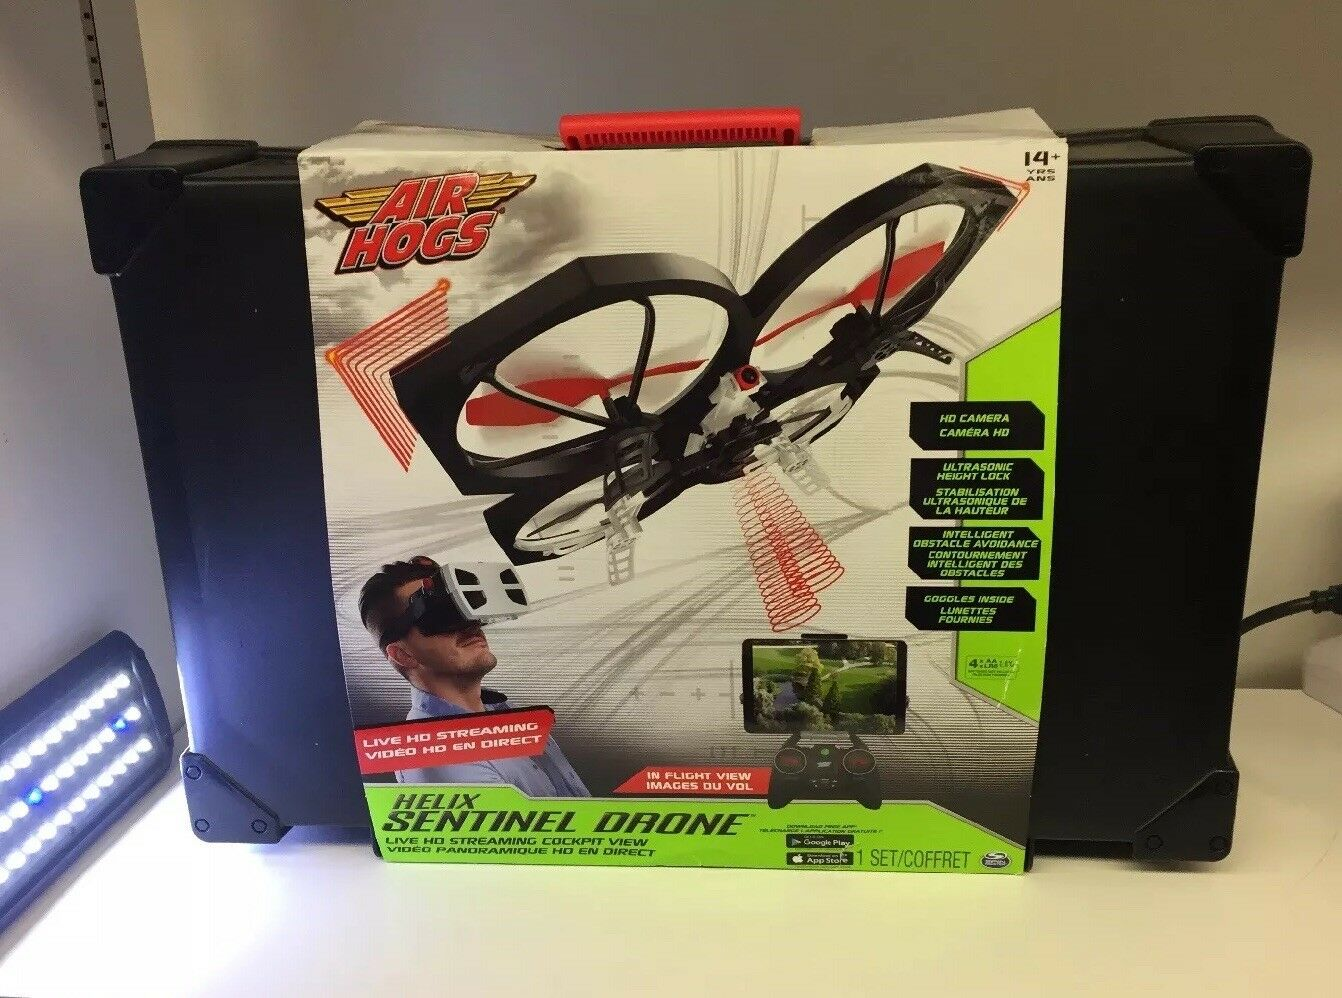 Hogs Helix Sentinel primera Person Air Vista FPV HD 720p de vídeo Drone 4G Wifi capabl